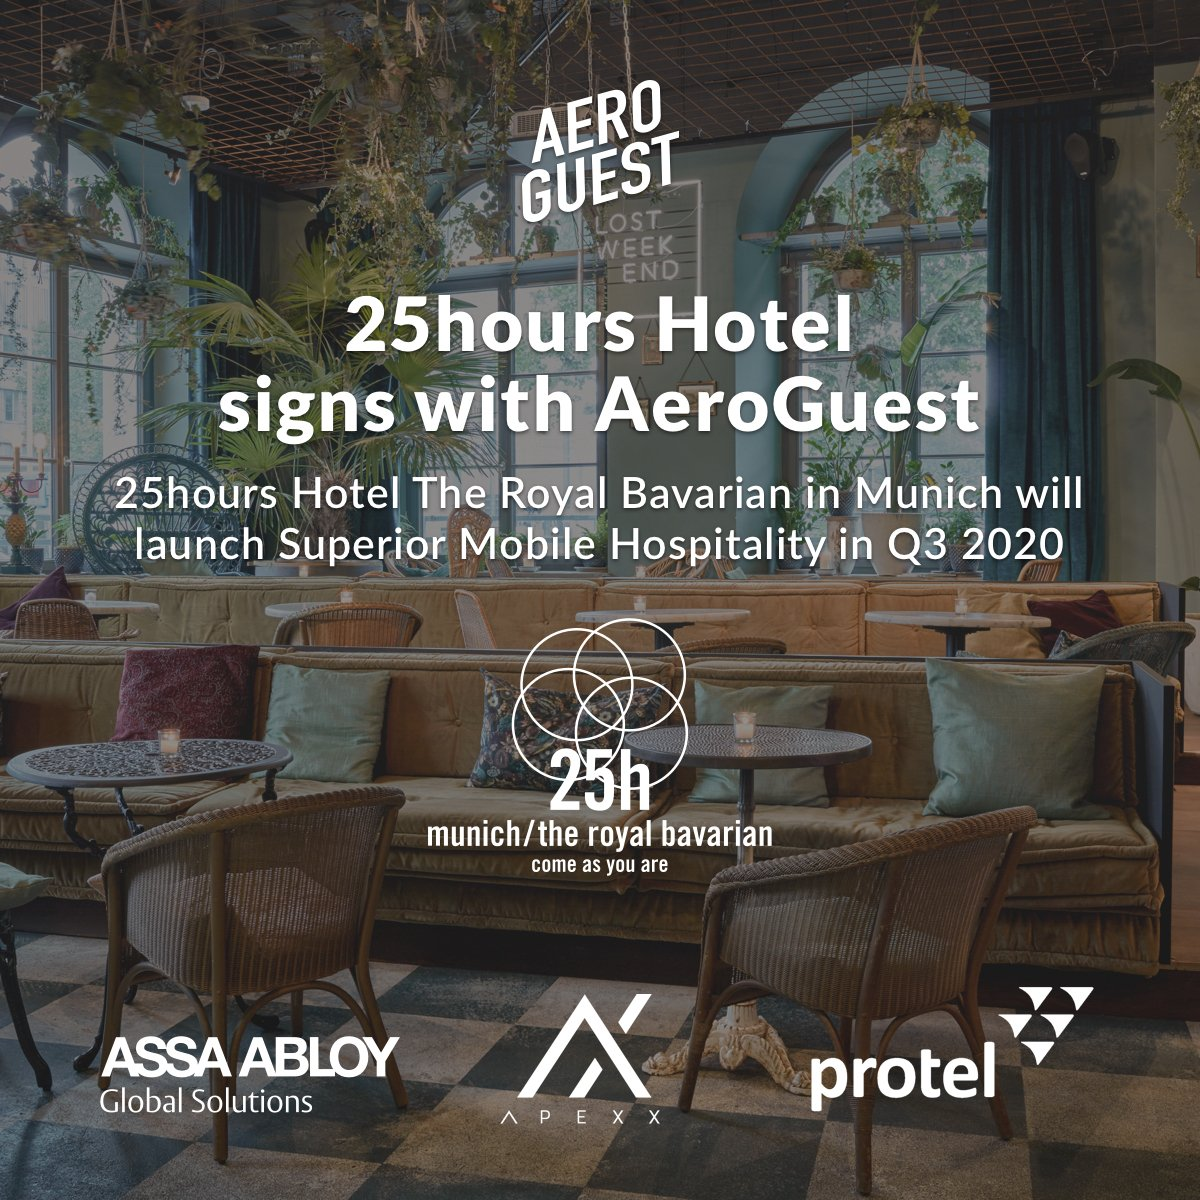 Welcoming advanced #mobile #hospitality to @25hourshotelspic.twitter.com/SmlwRUmFme